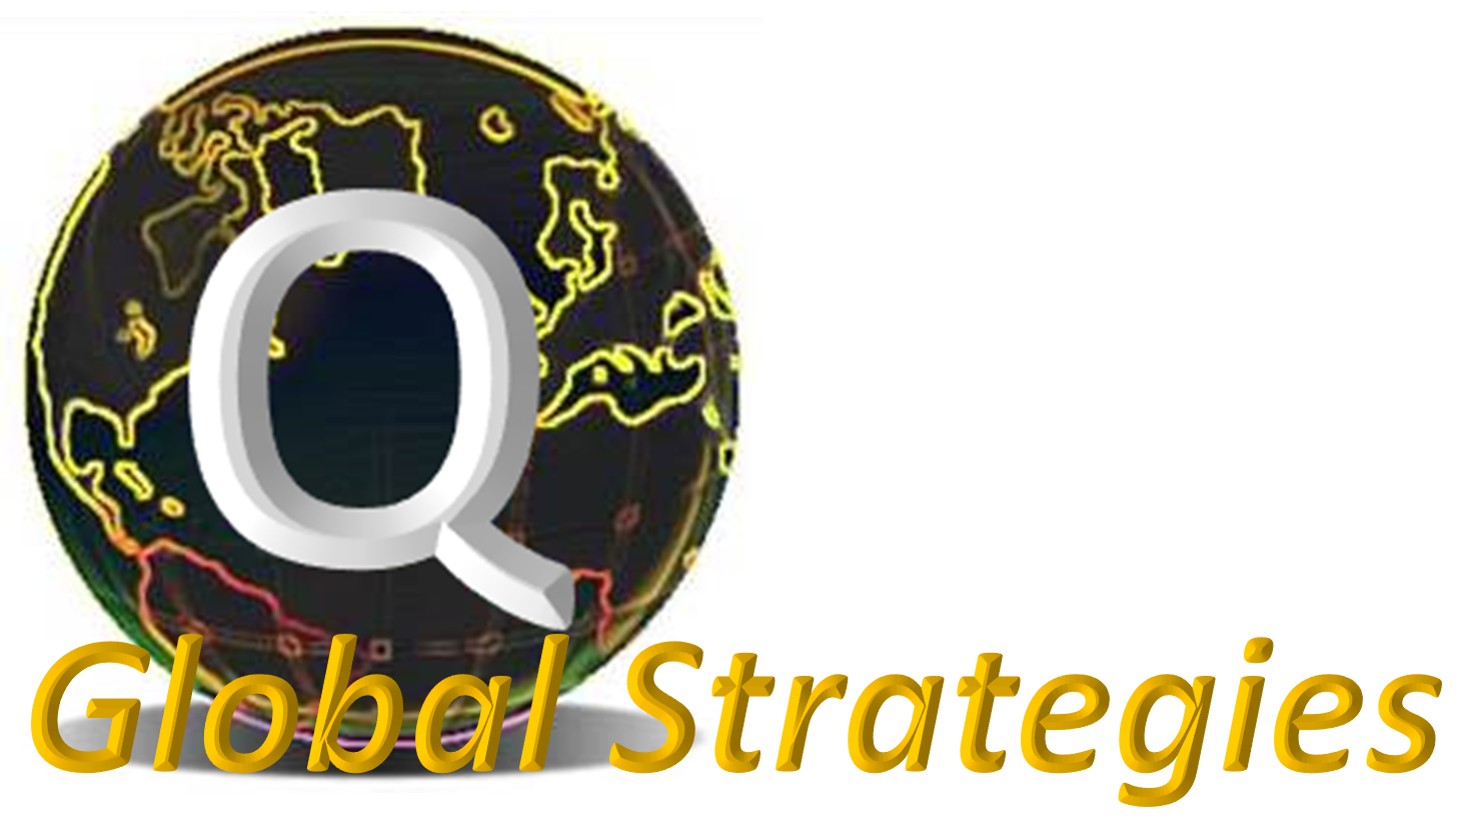 Q Global Strategies